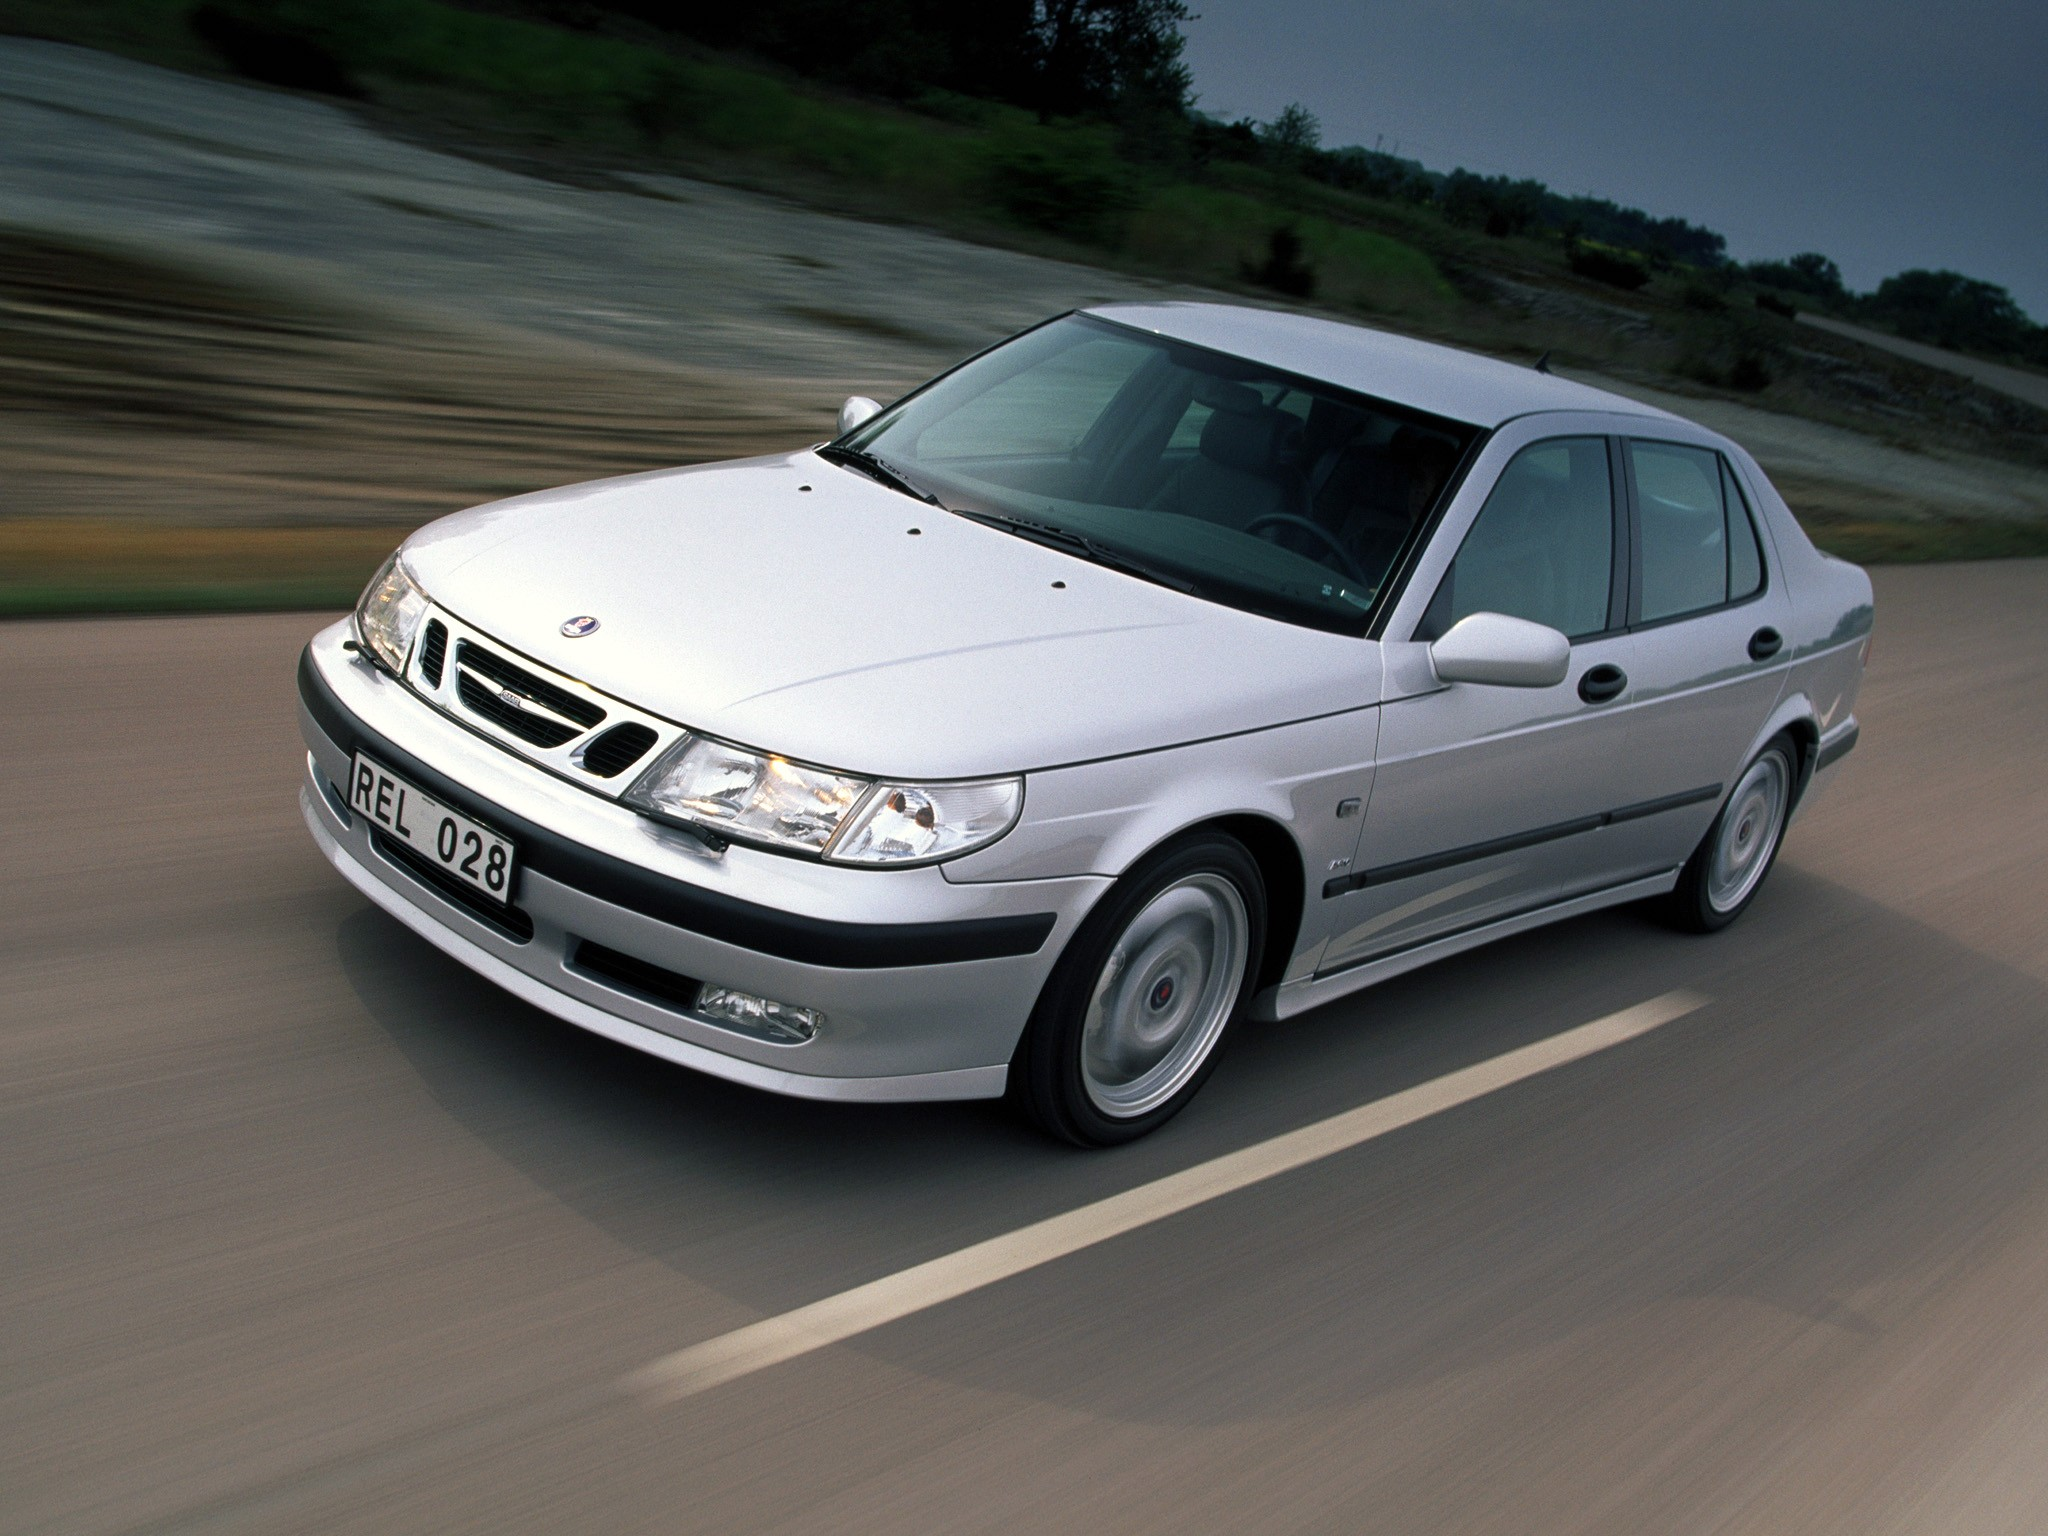 saab 9 5 specs 1997 1998 1999 2000 2001 autoevolution. Black Bedroom Furniture Sets. Home Design Ideas